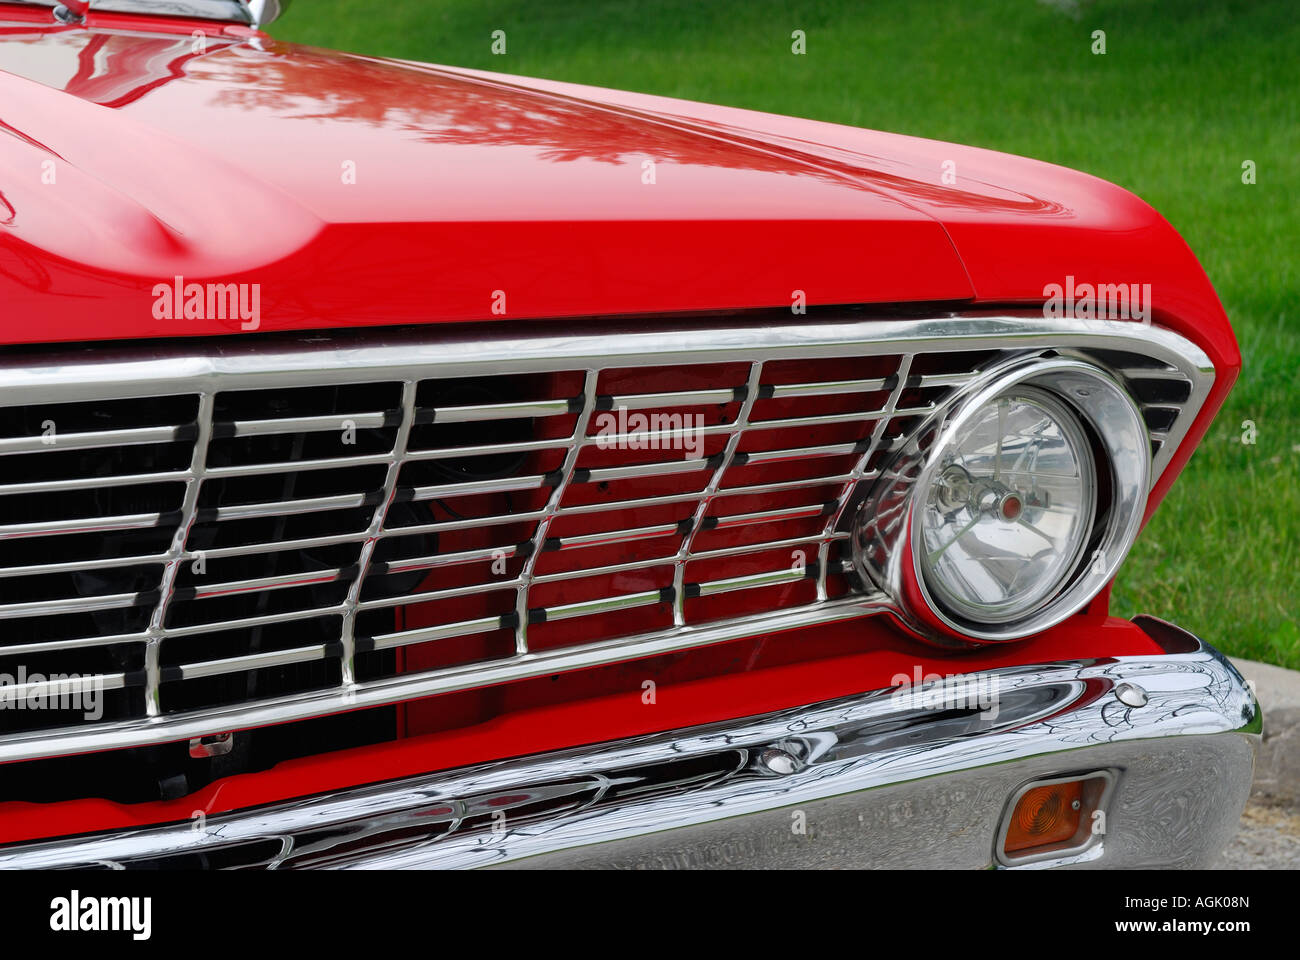 Refurbished red 1964 ford falcon car front grill and hood against refurbished red 1964 ford falcon car front grill and hood against green grass sciox Images